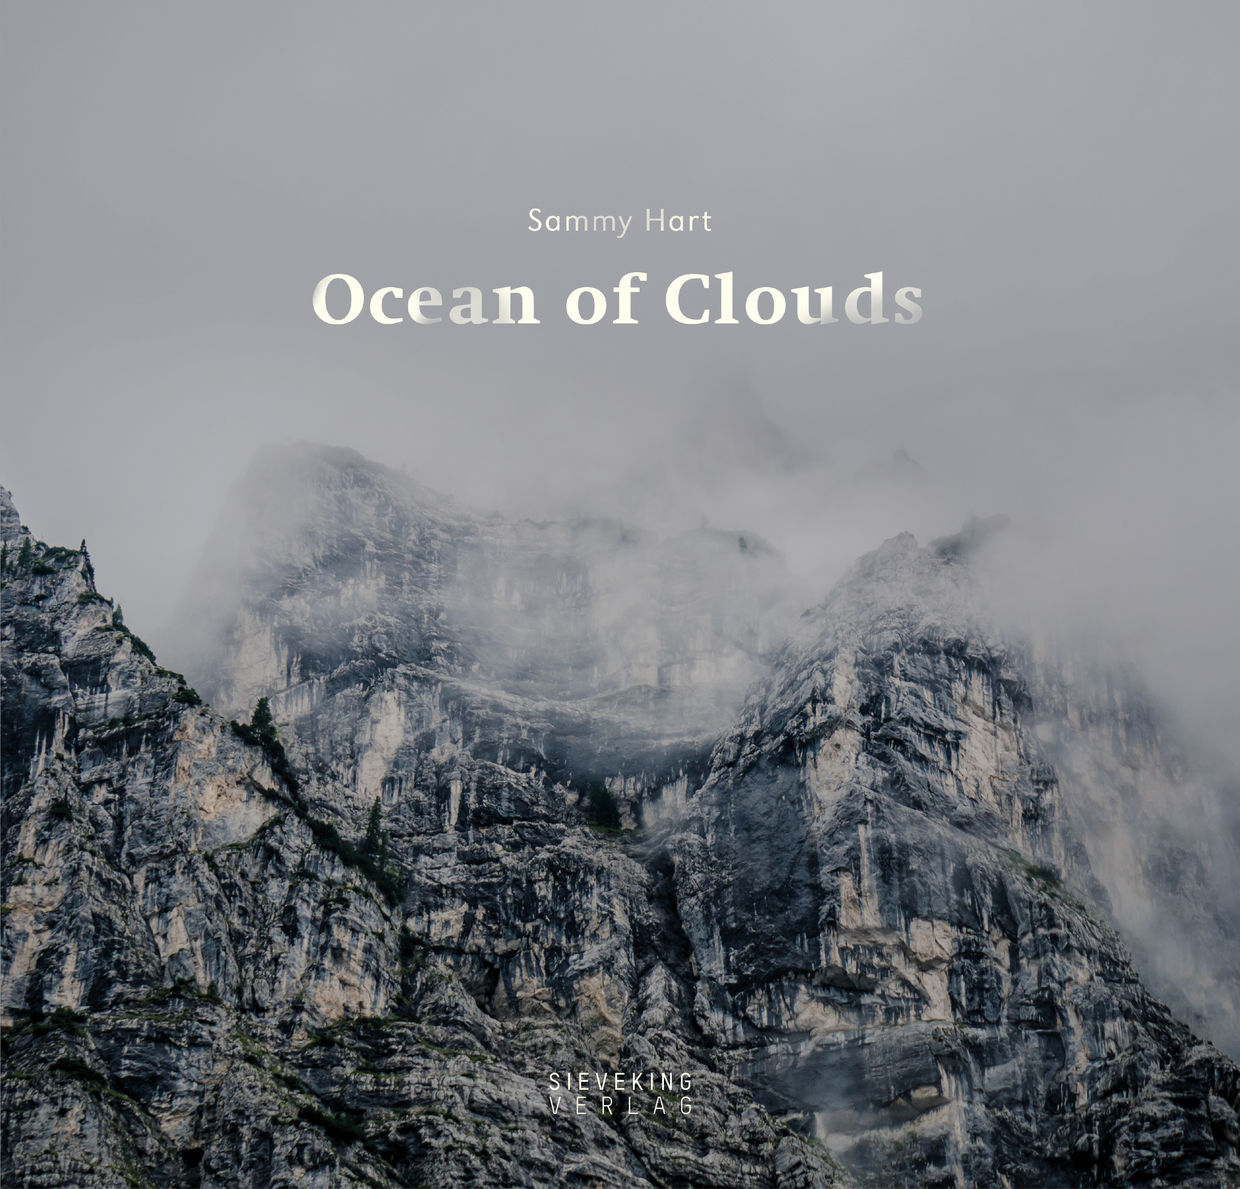 'Ocean of Clouds' by Samy Heart (Sieveking Verlag)